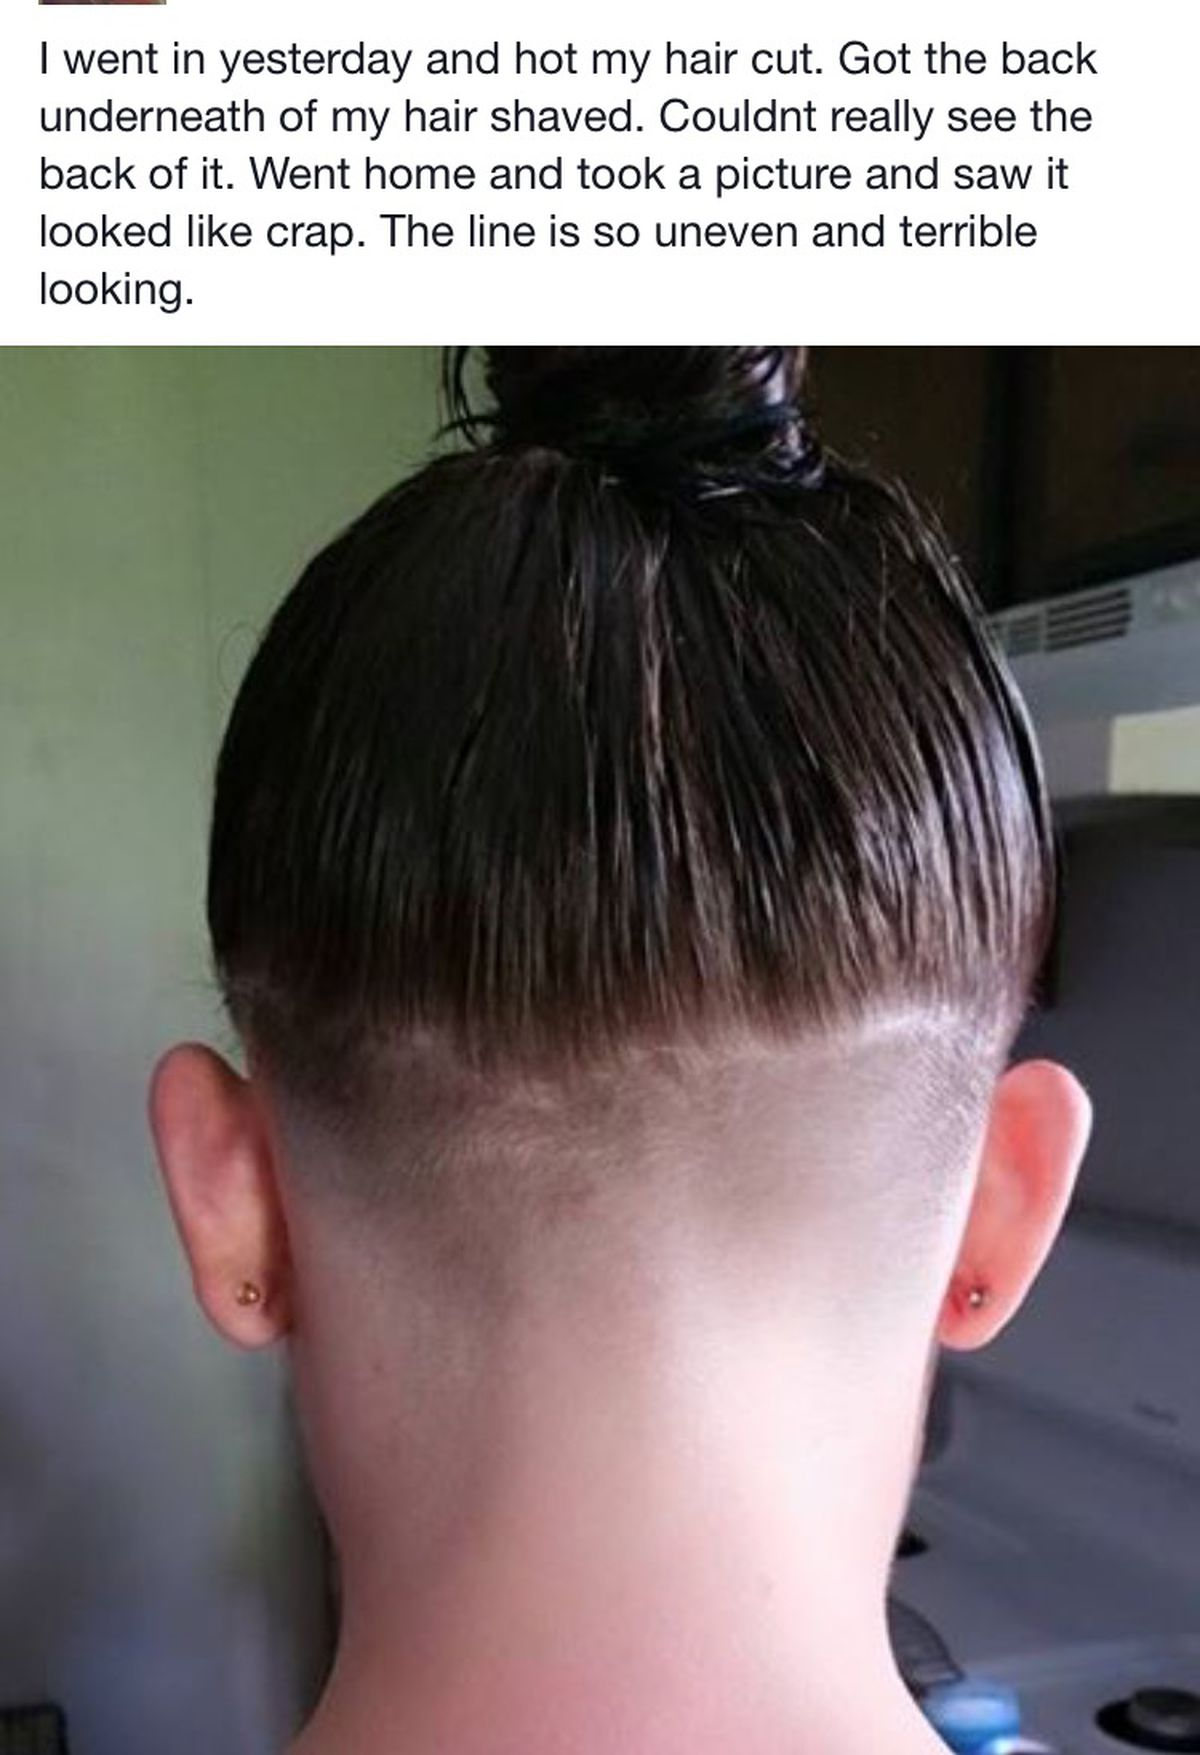 17 Times People Really Regretted Going to Great Clips Racked